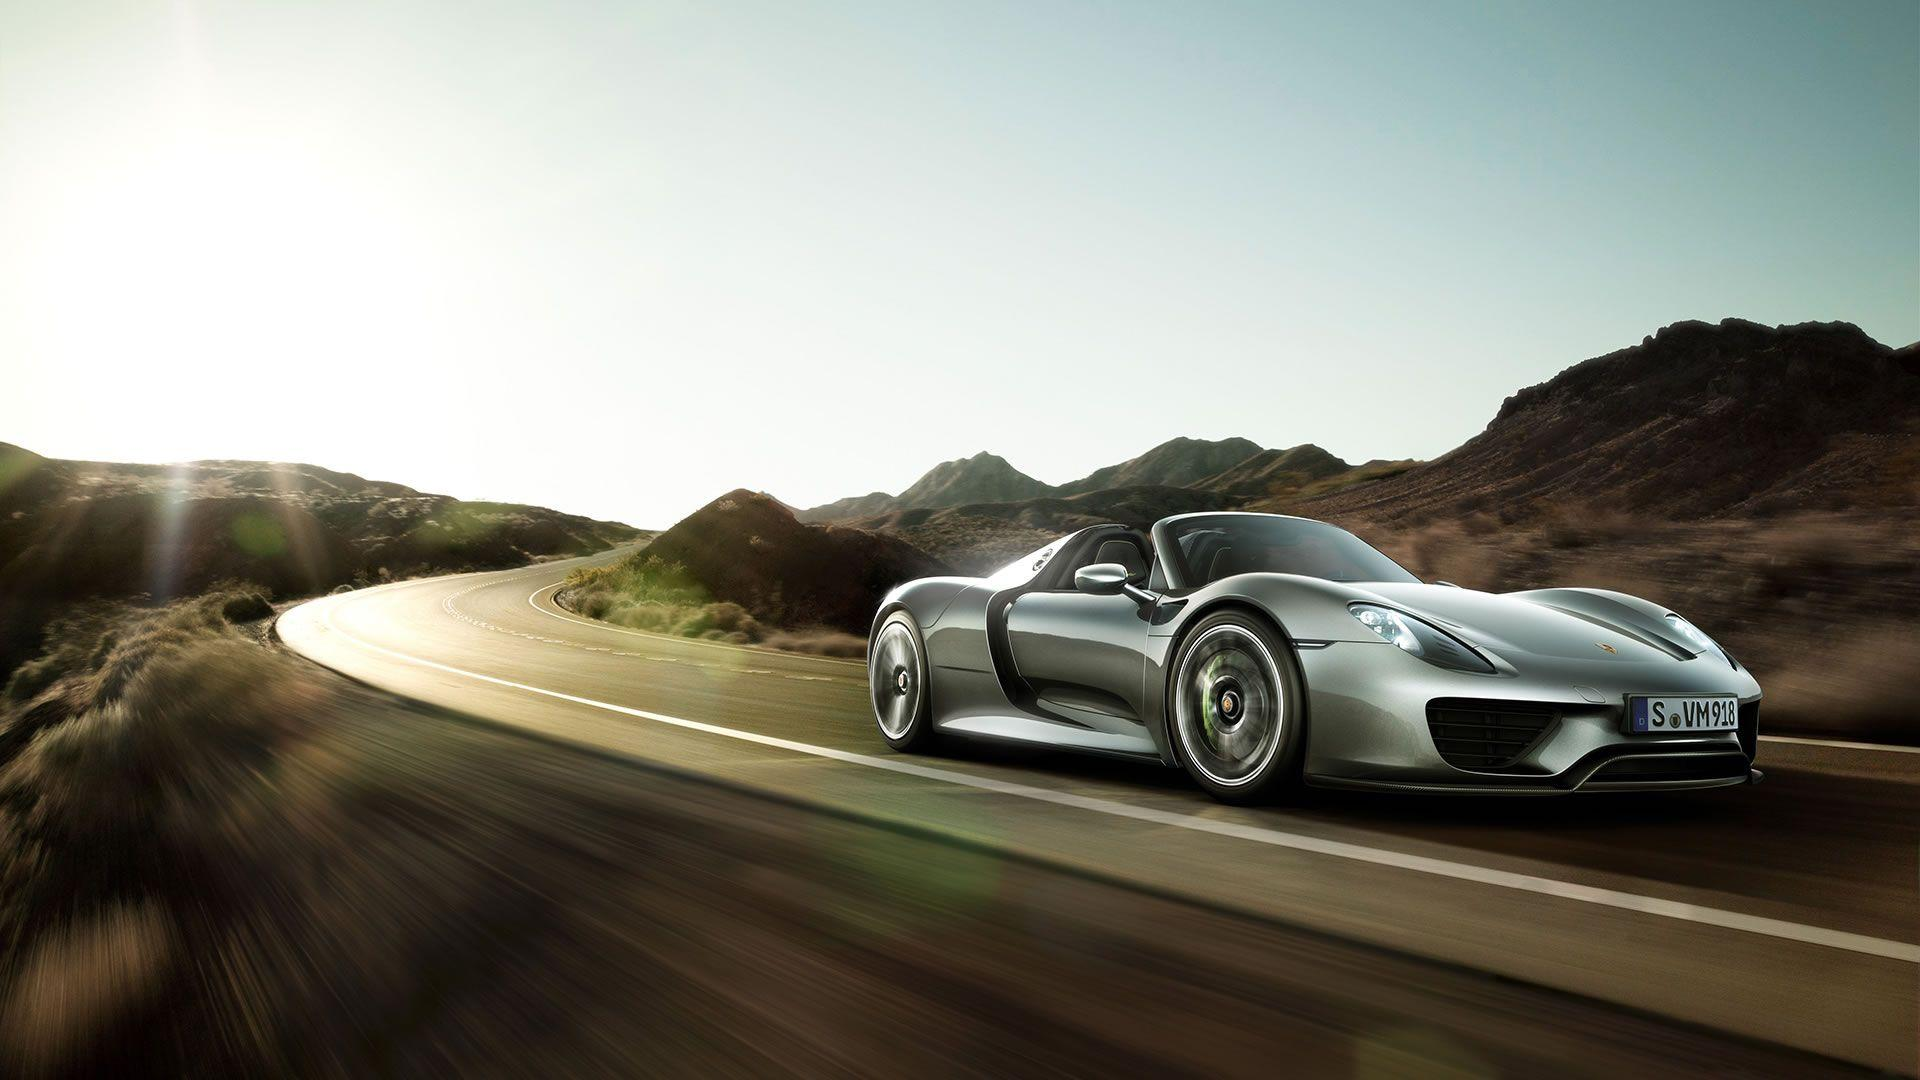 2015 Porsche 918 Spyder Wallpapers